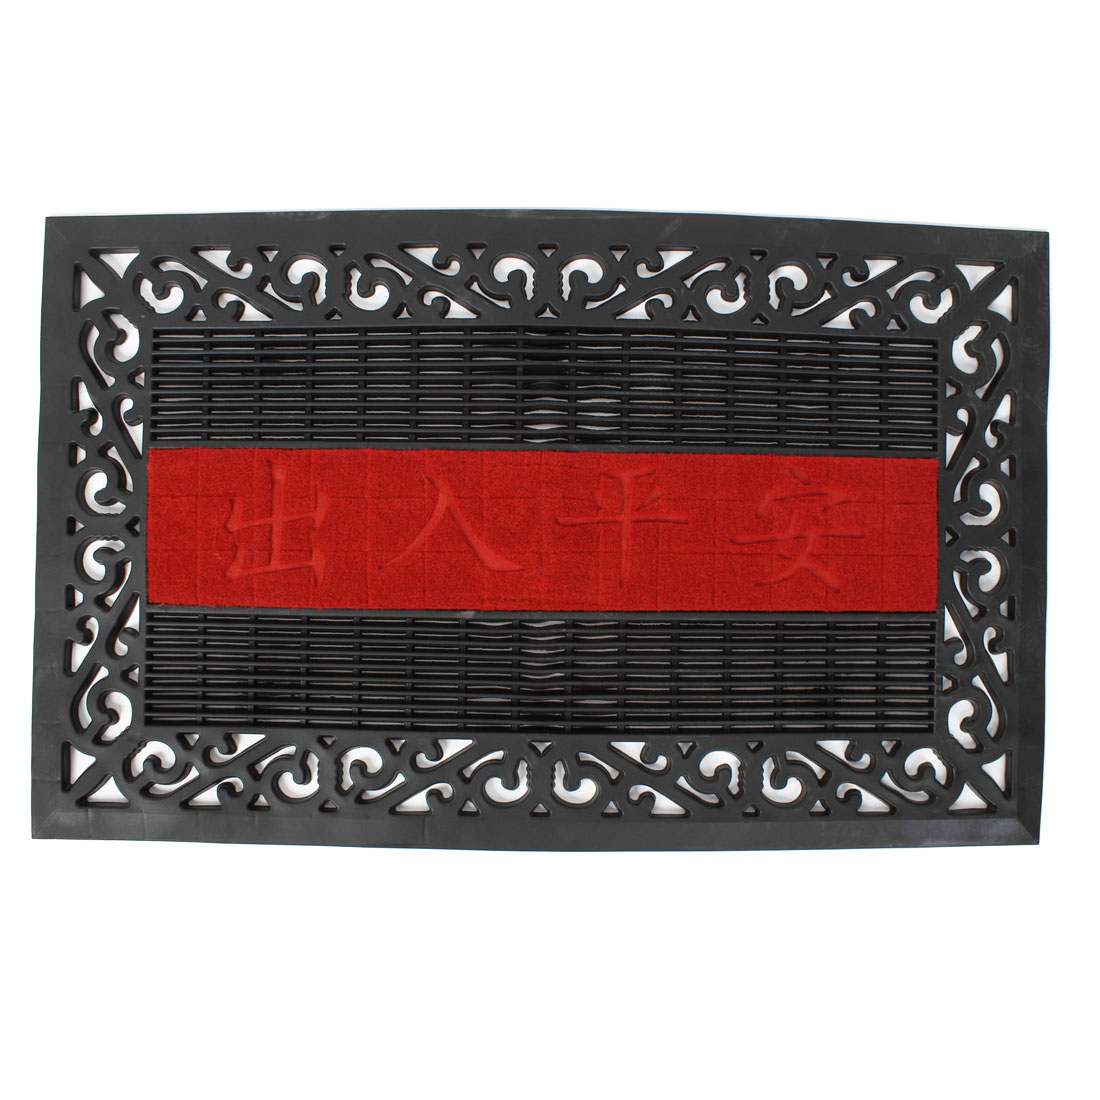 Black Anti Slip Hollow Rubber Floor Door Mat 78cm x 48cm